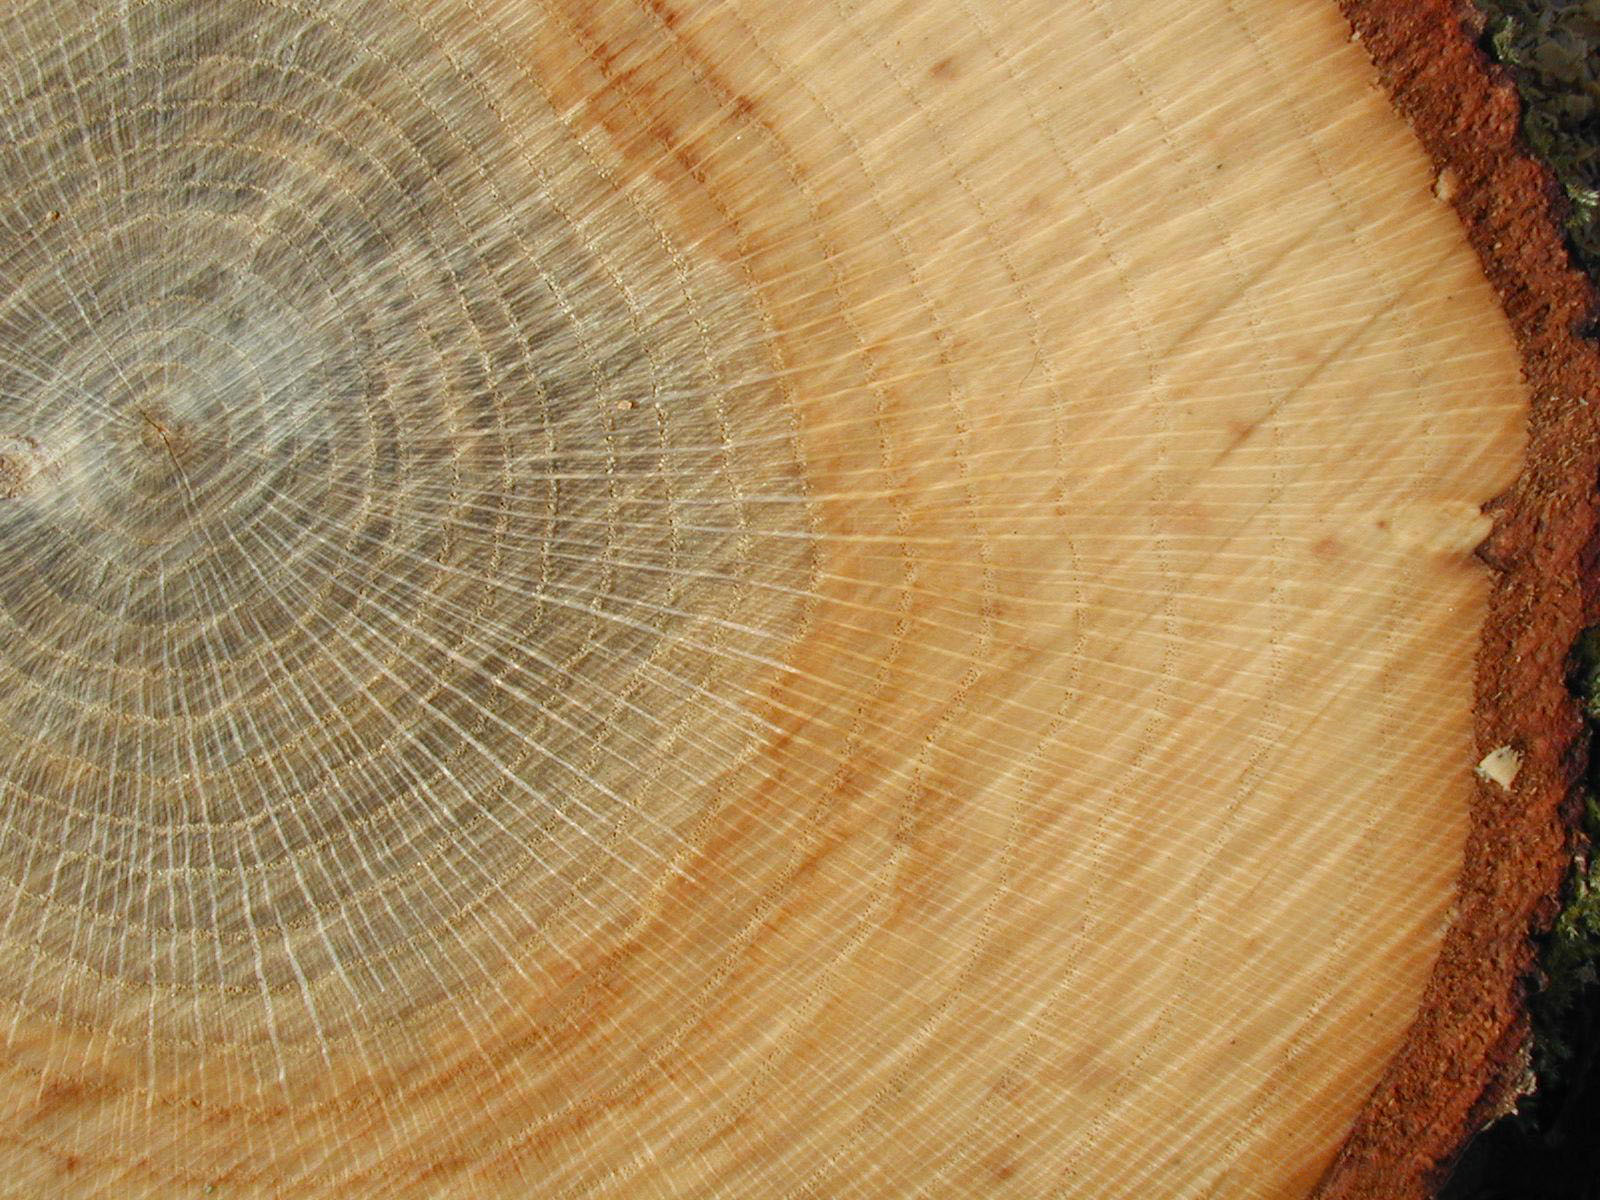 Differentiate wood from wood and wood